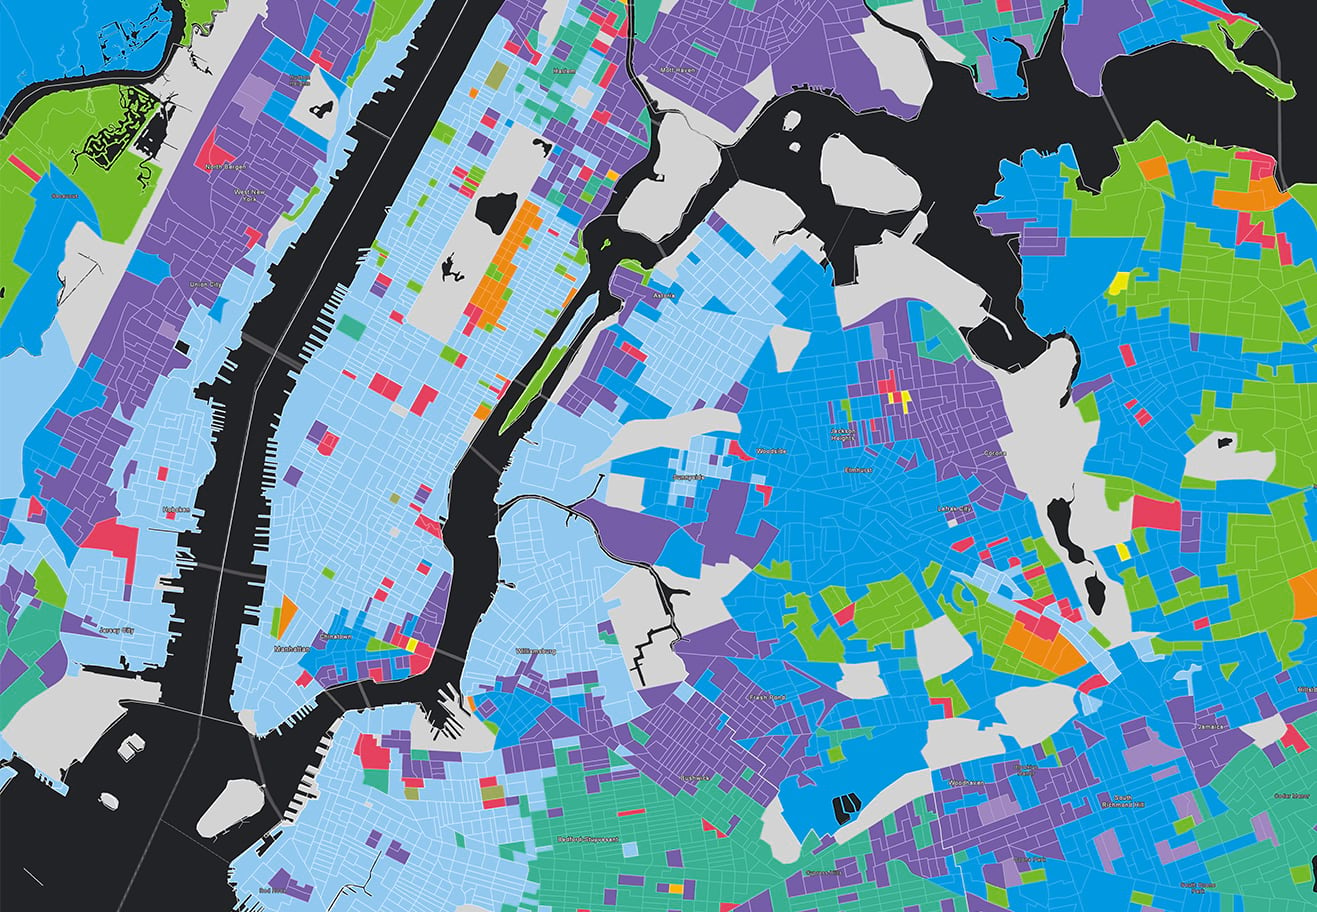 Esri Tapestry Segmentation can show you the different behavioral characteristics of your city